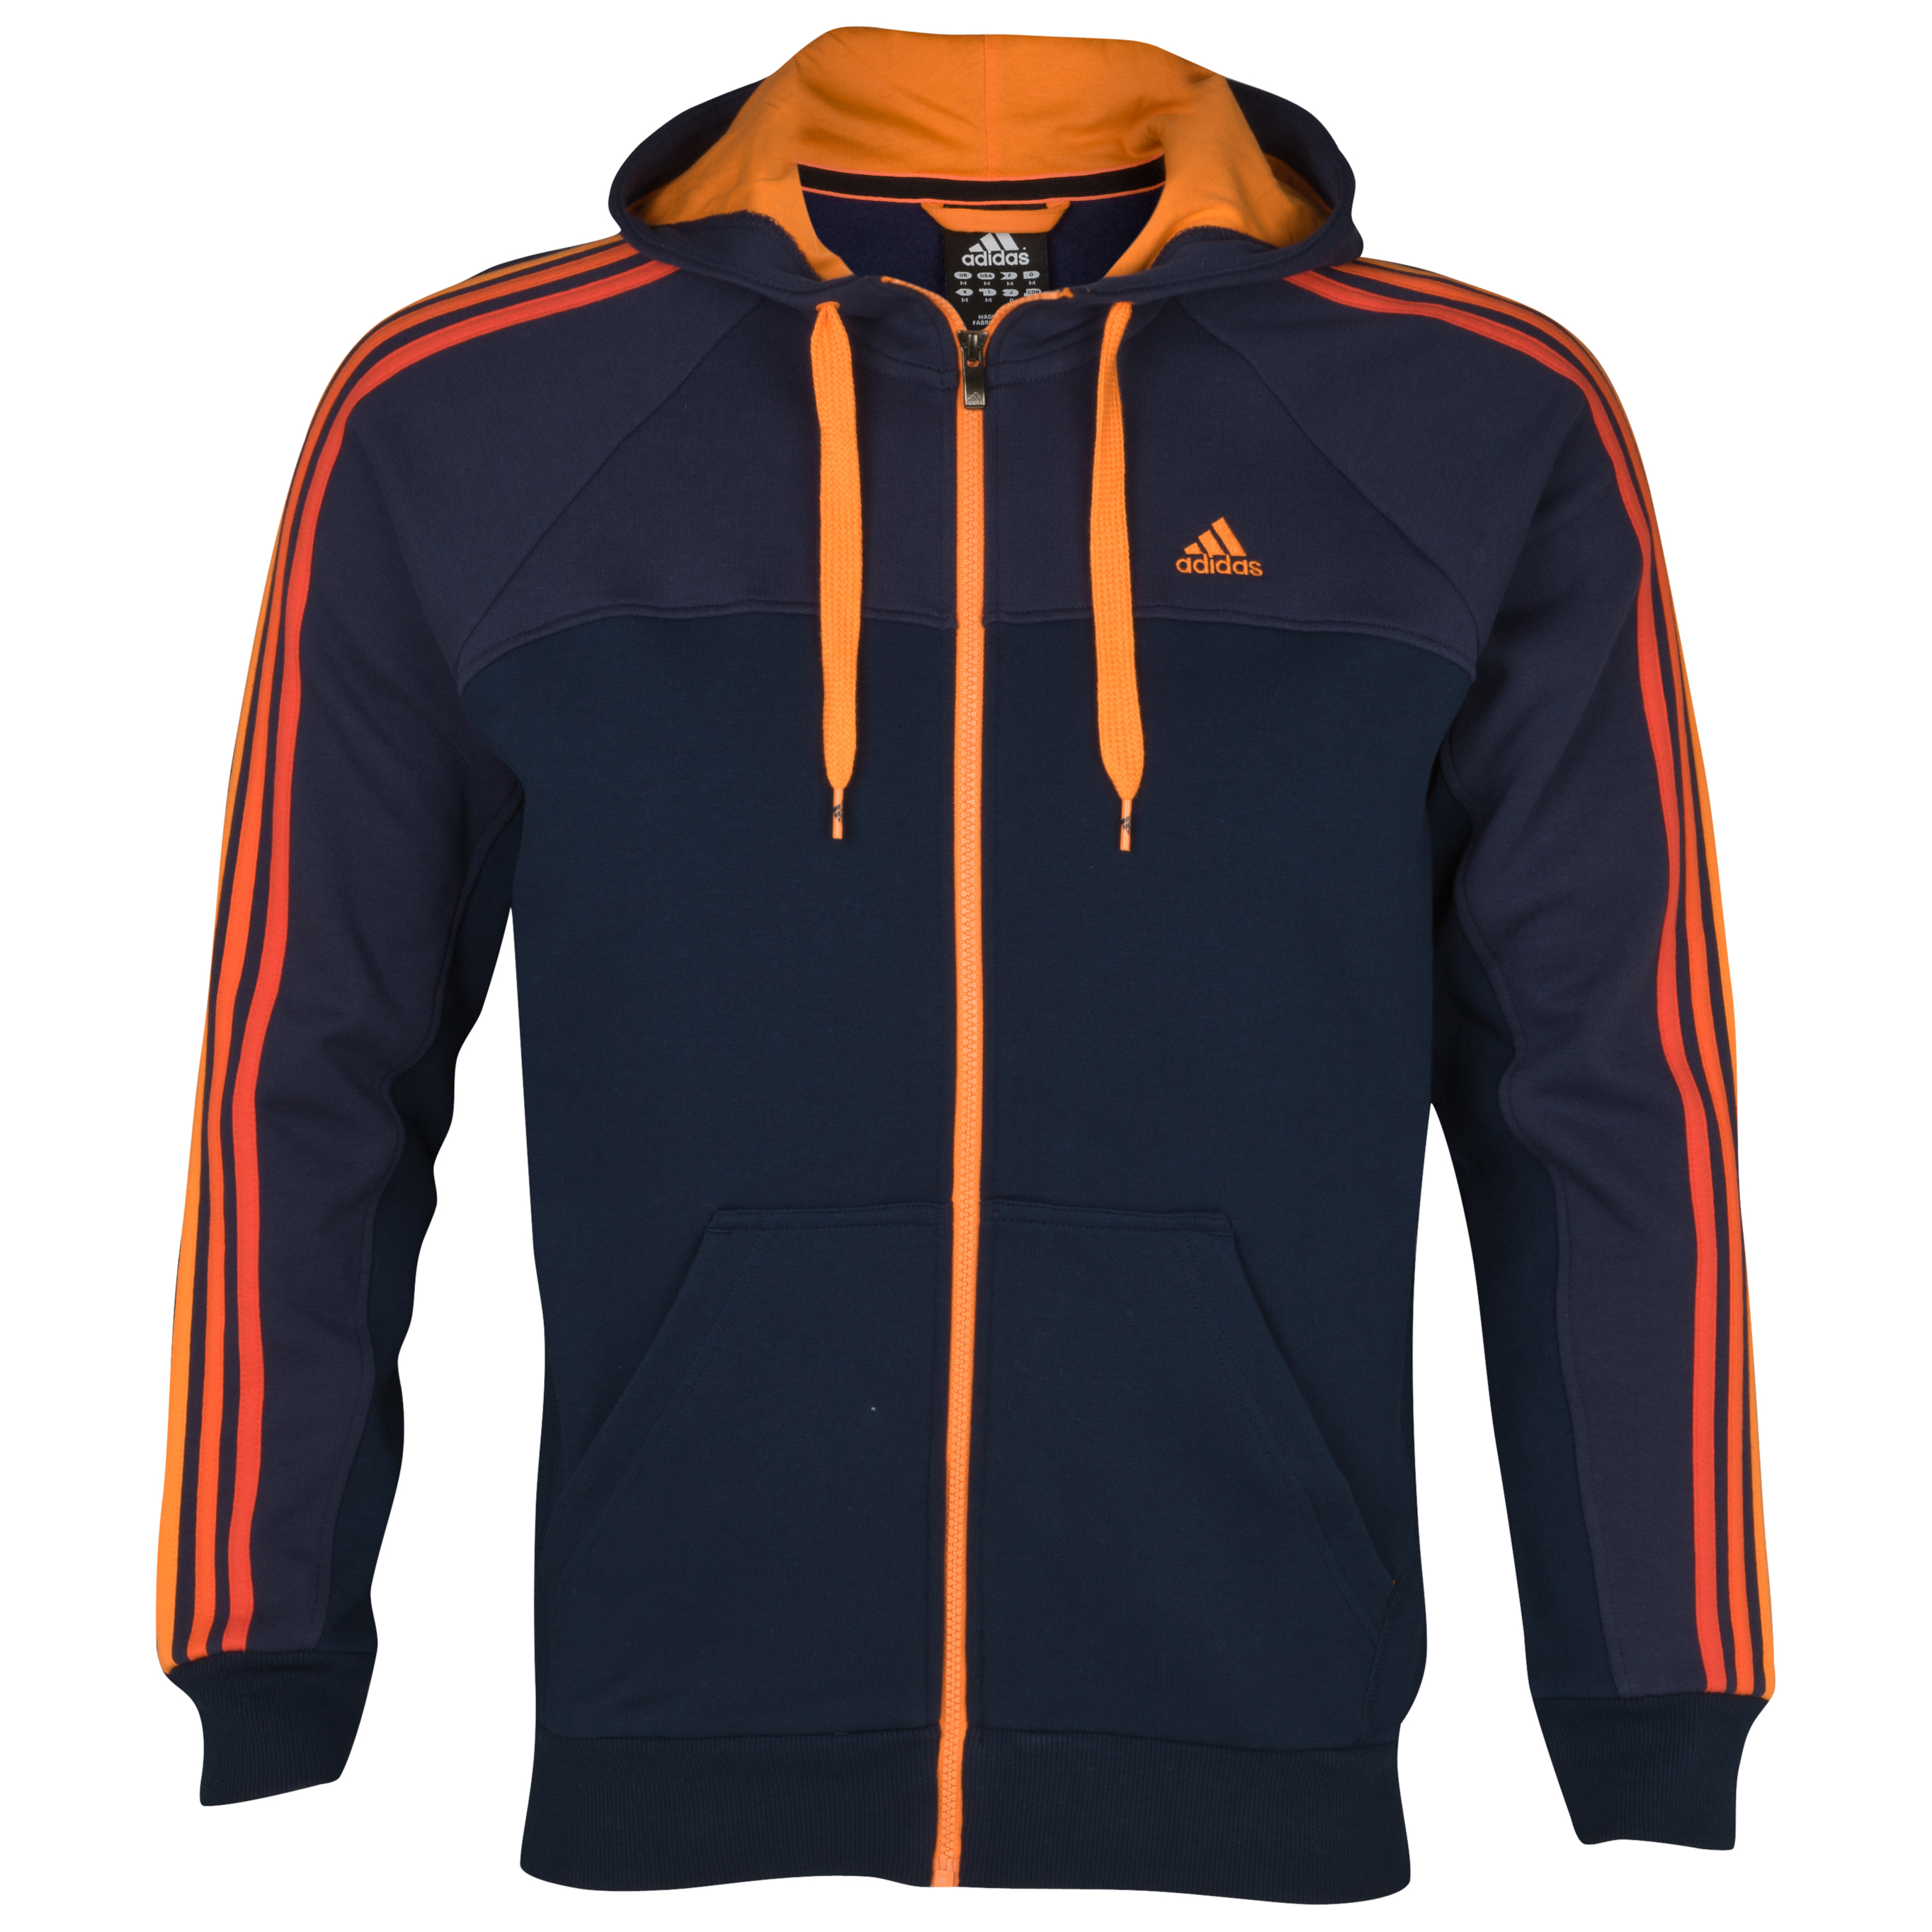 adidas Essentials 3 Stripe Full Zip Hooded Top - Collegiate Navy/Marine